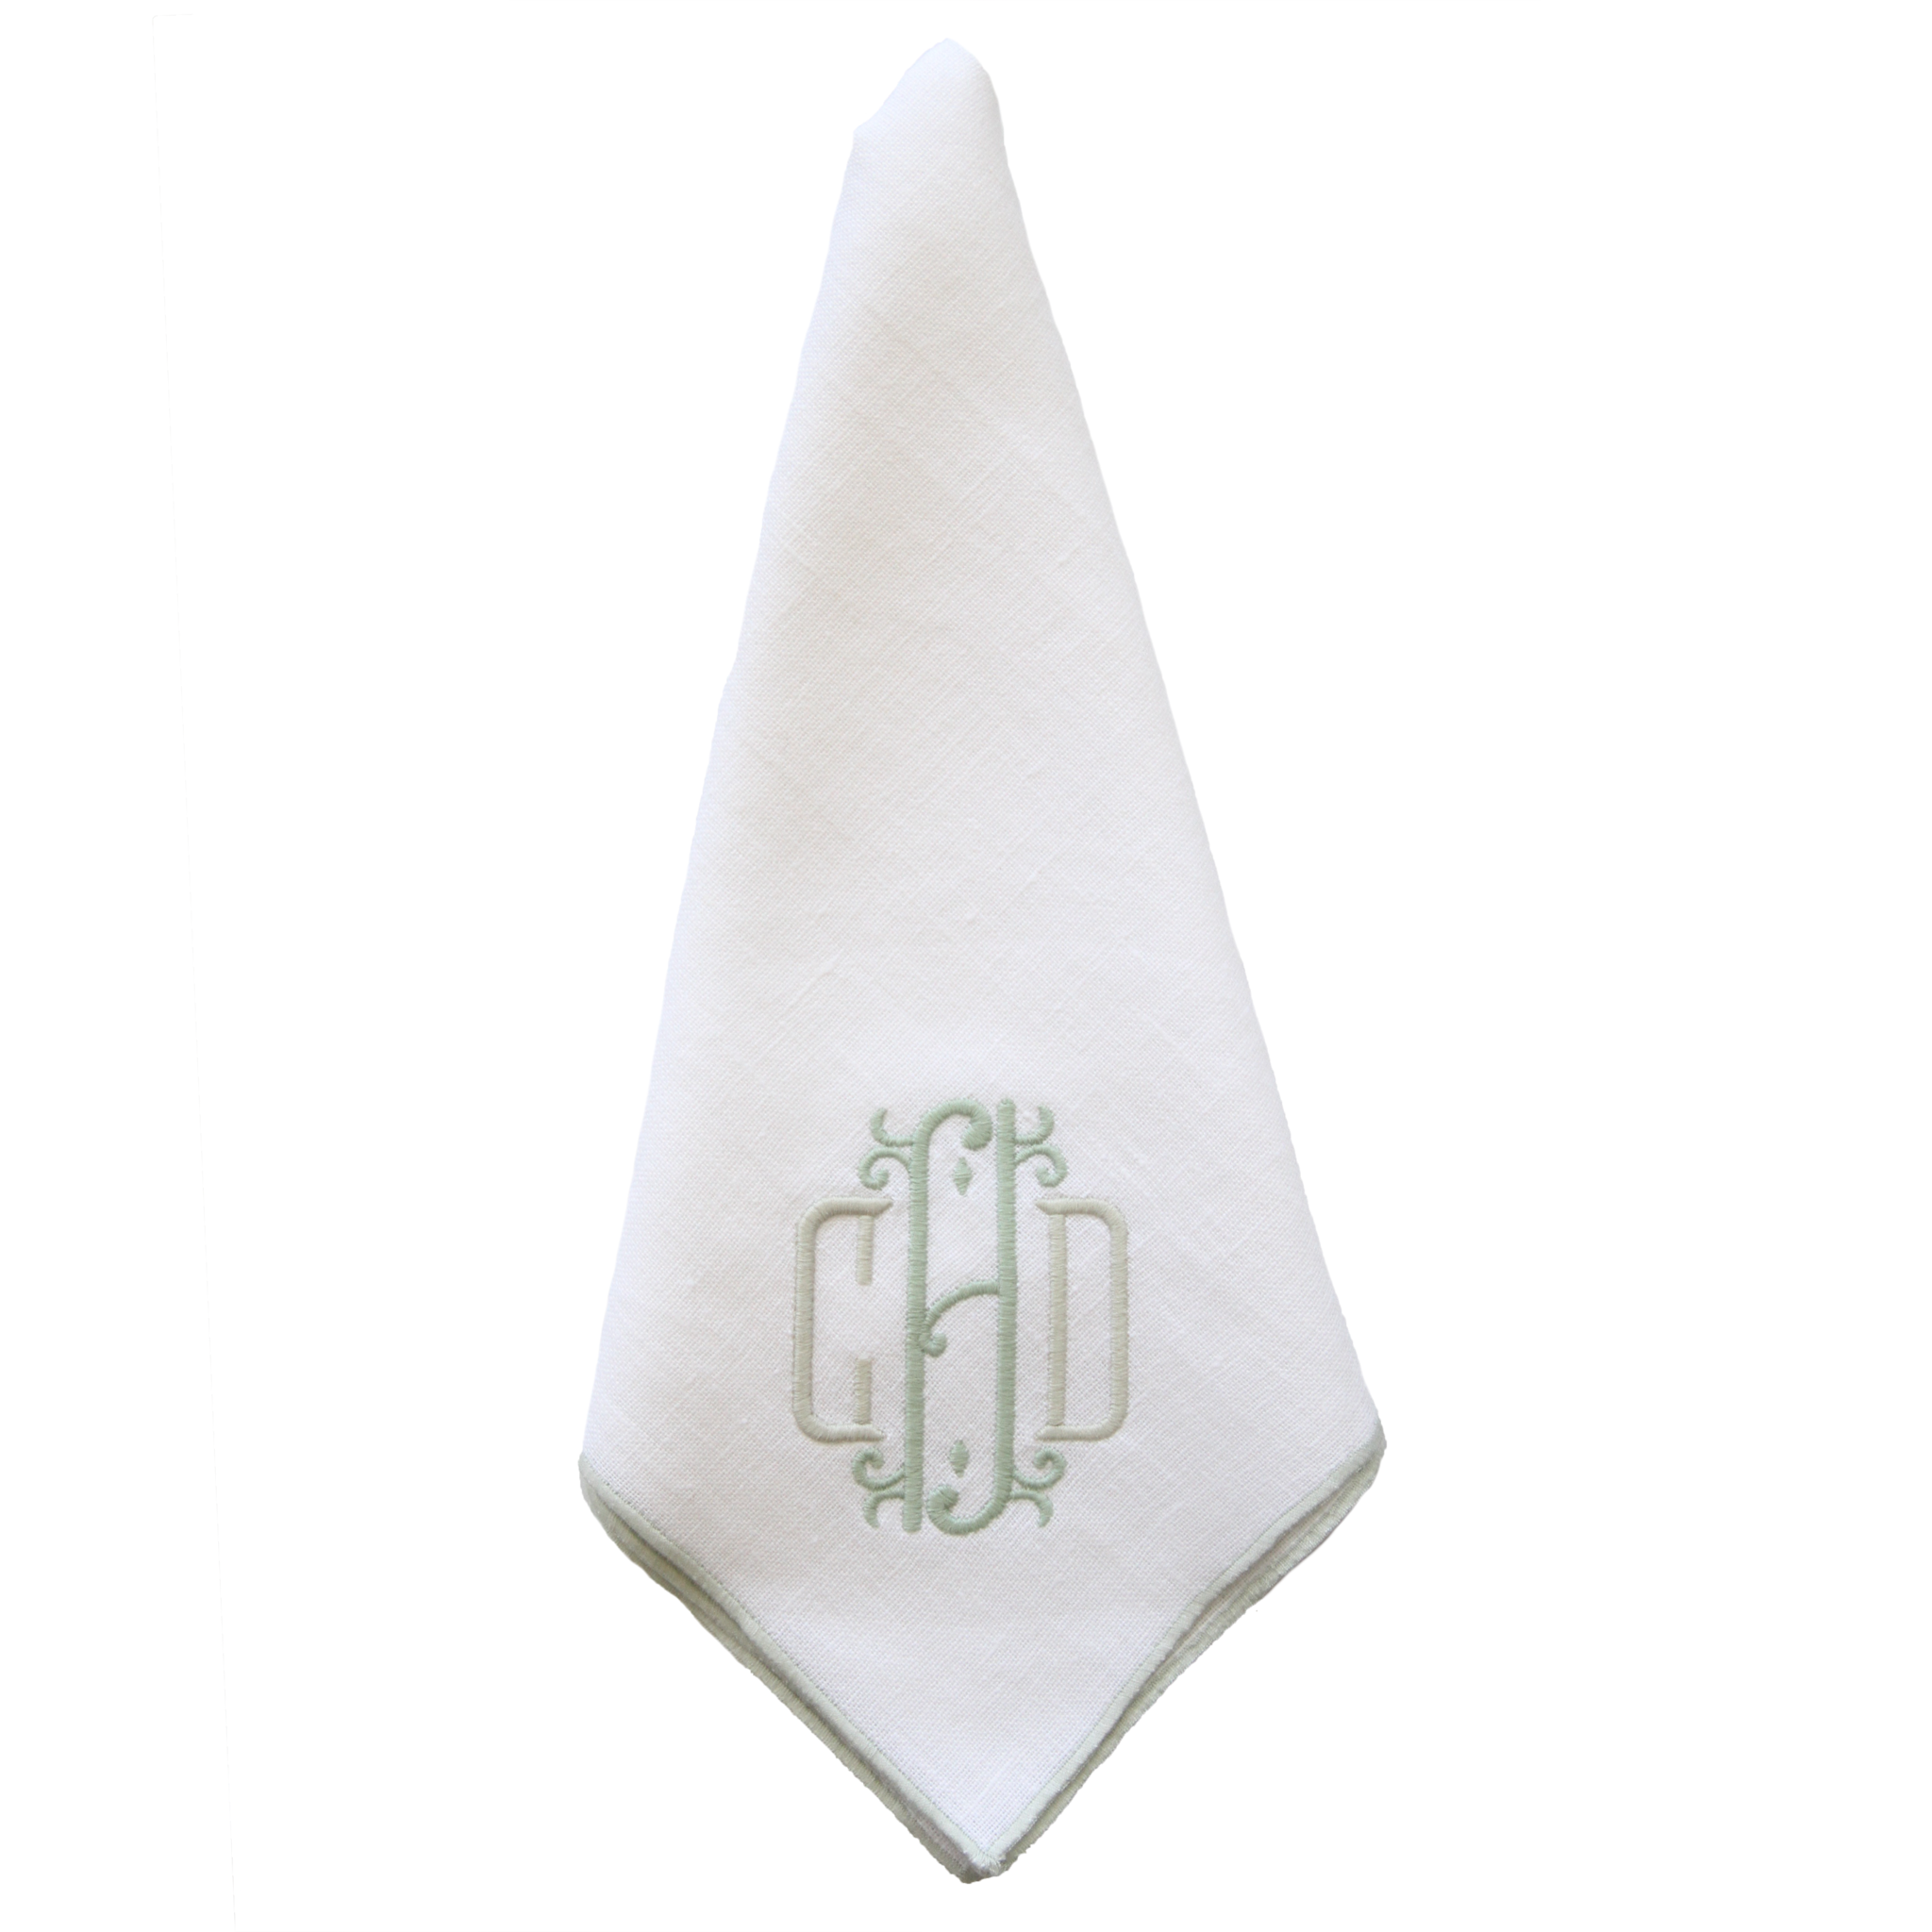 Duet Dinner Napkins . White & Sea Foam